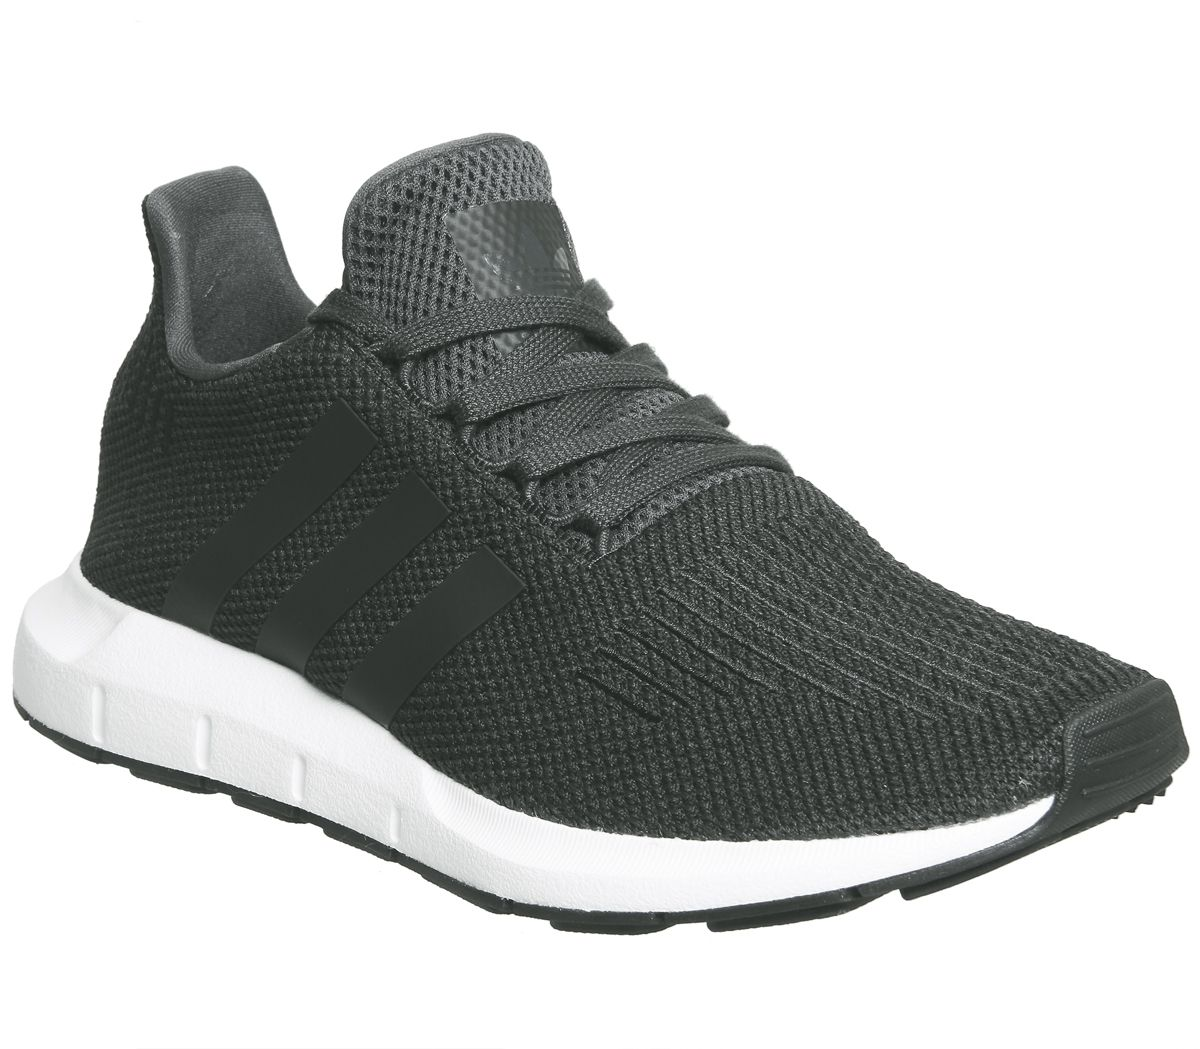 342a744a34acd adidas Swift Run Trainers Carbon - Unisex Sports